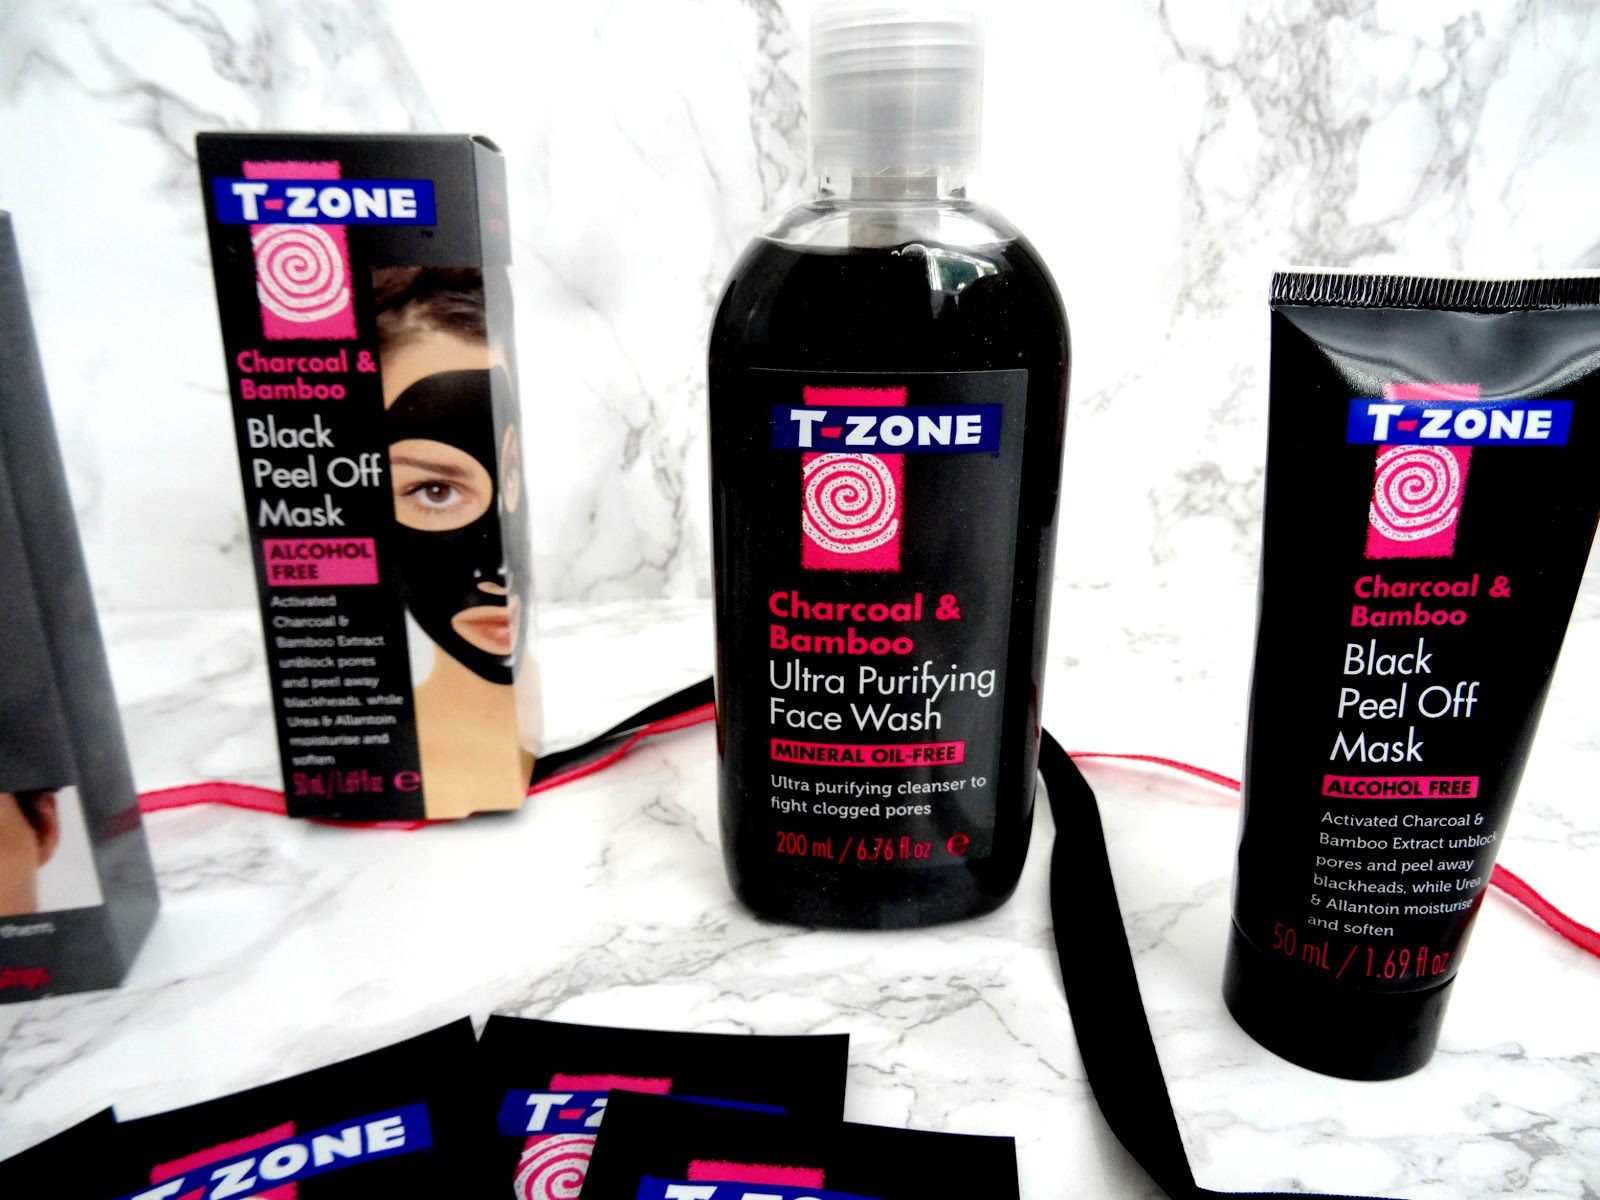 T-Zone's New Charcoal&Bamboo Skincare Range